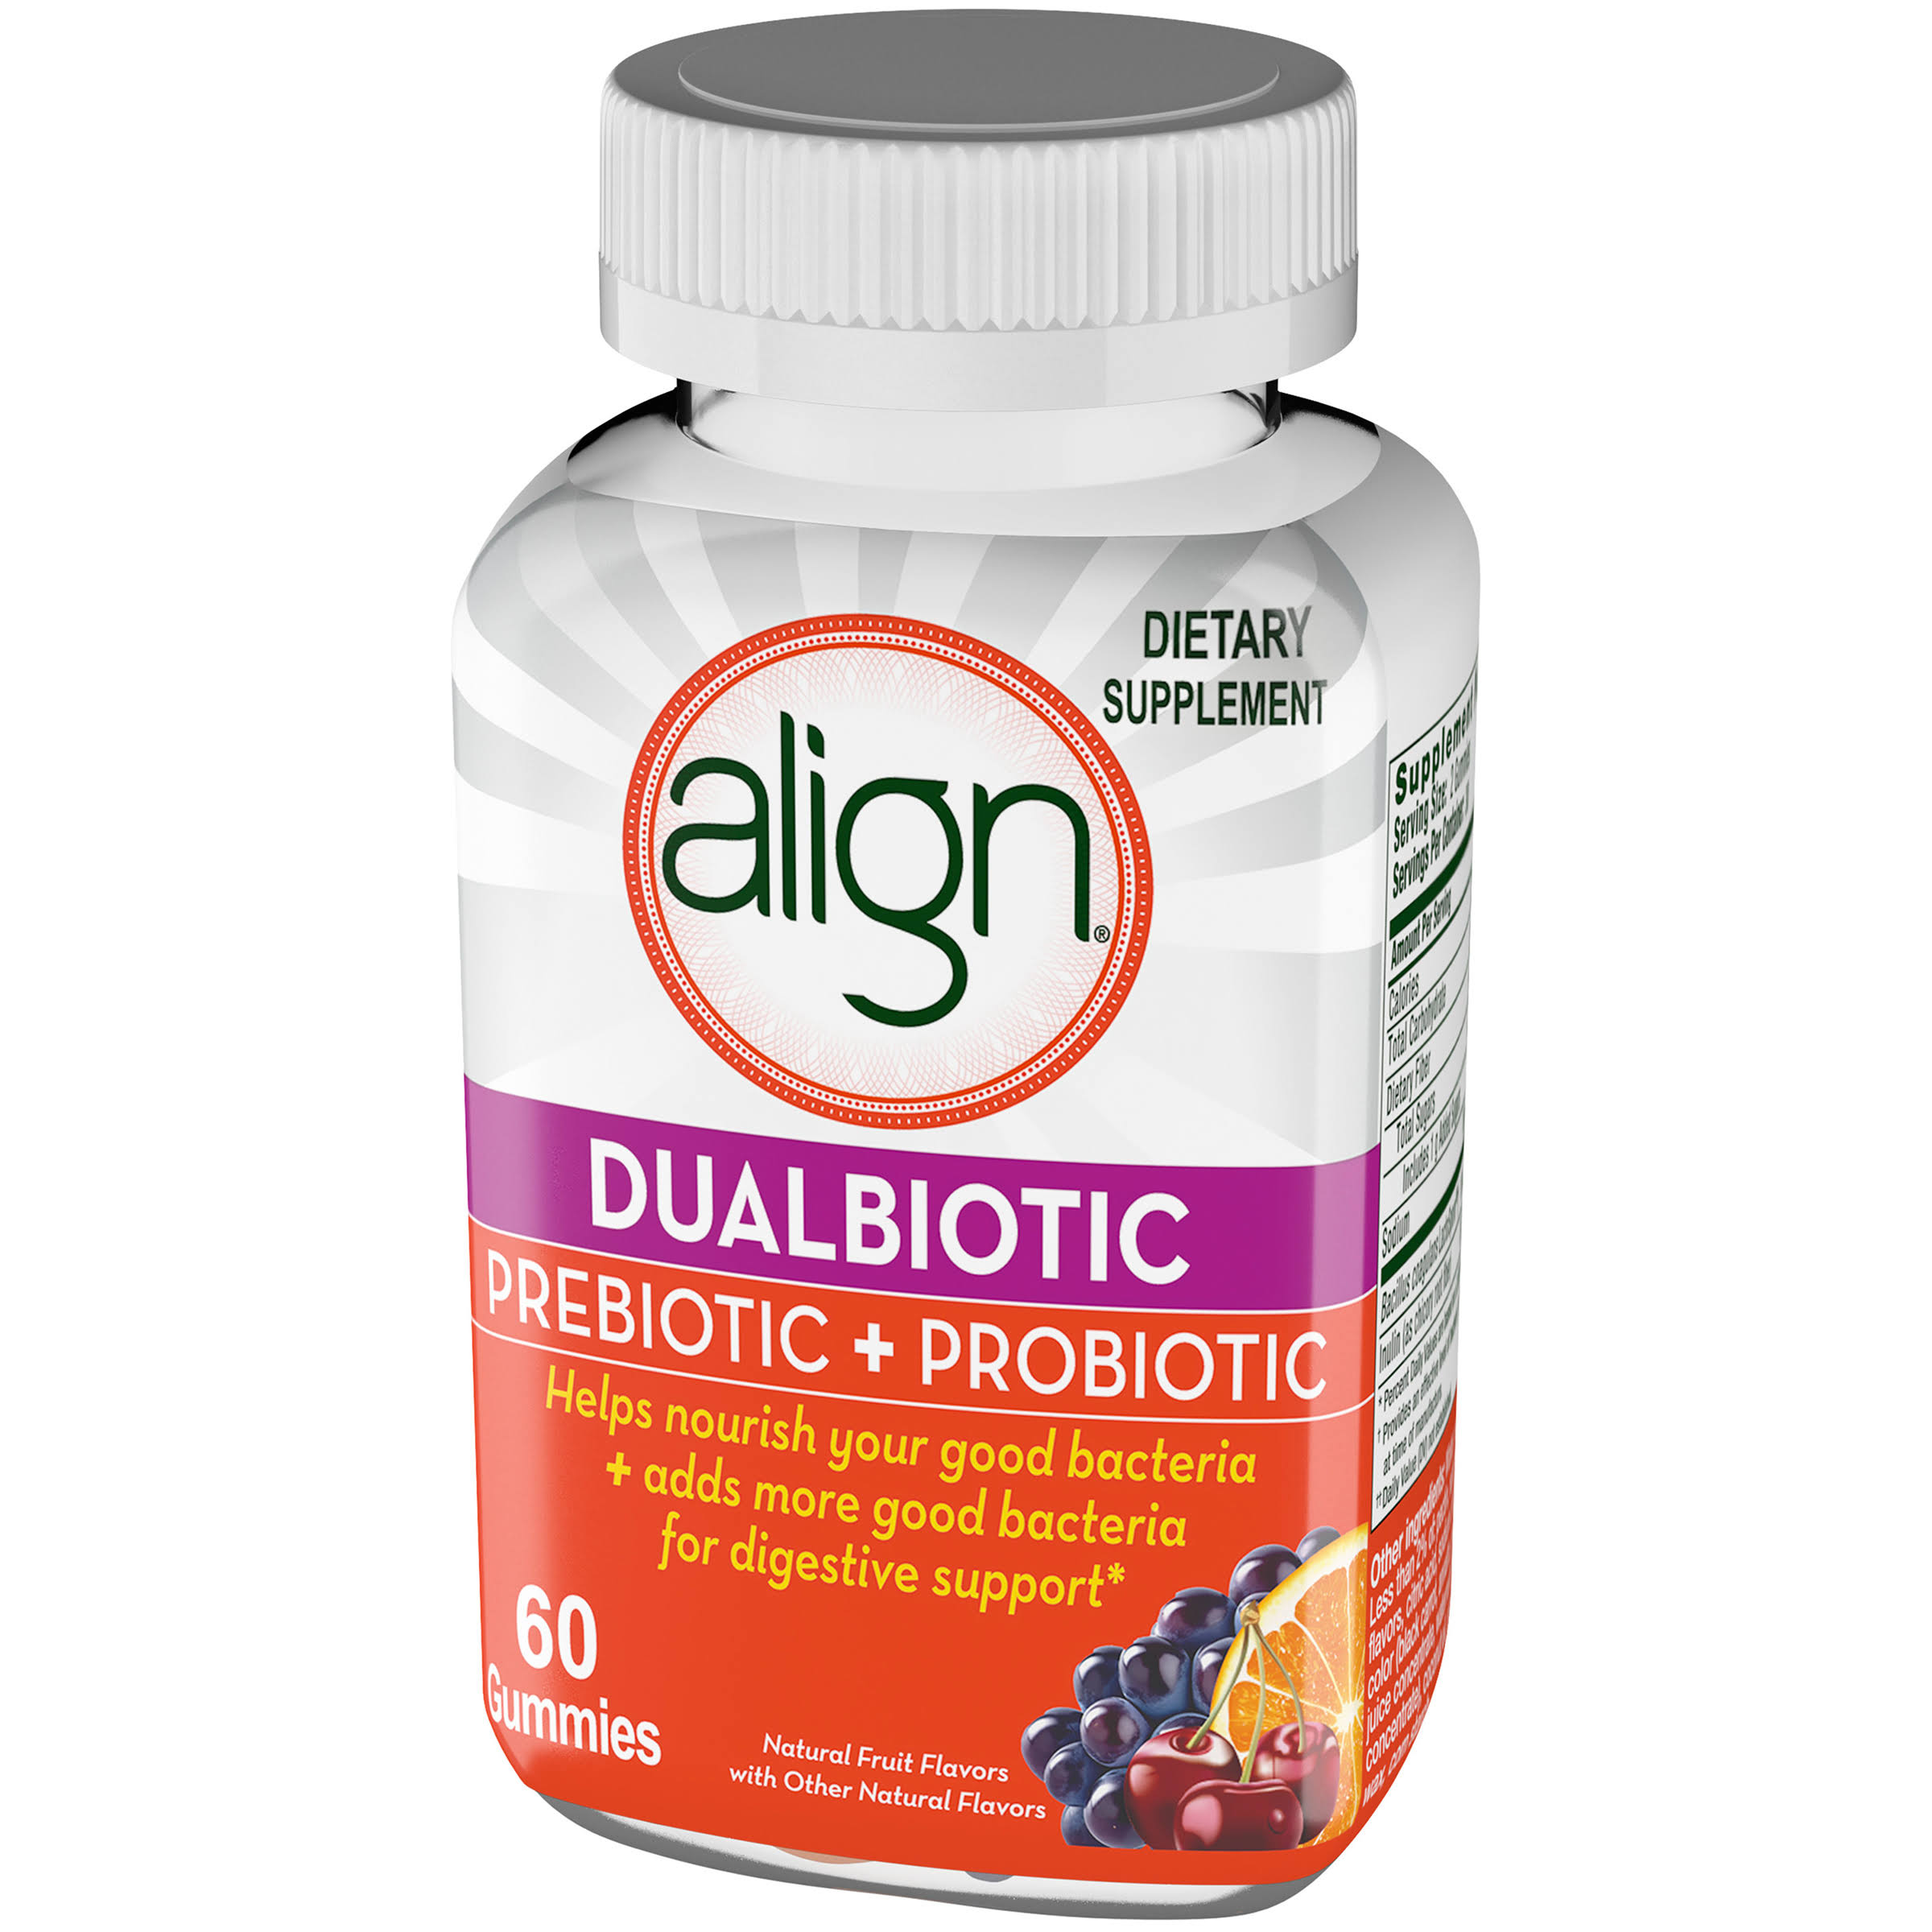 Align Prebiotic Plus Probiotic Supplement - 60ct